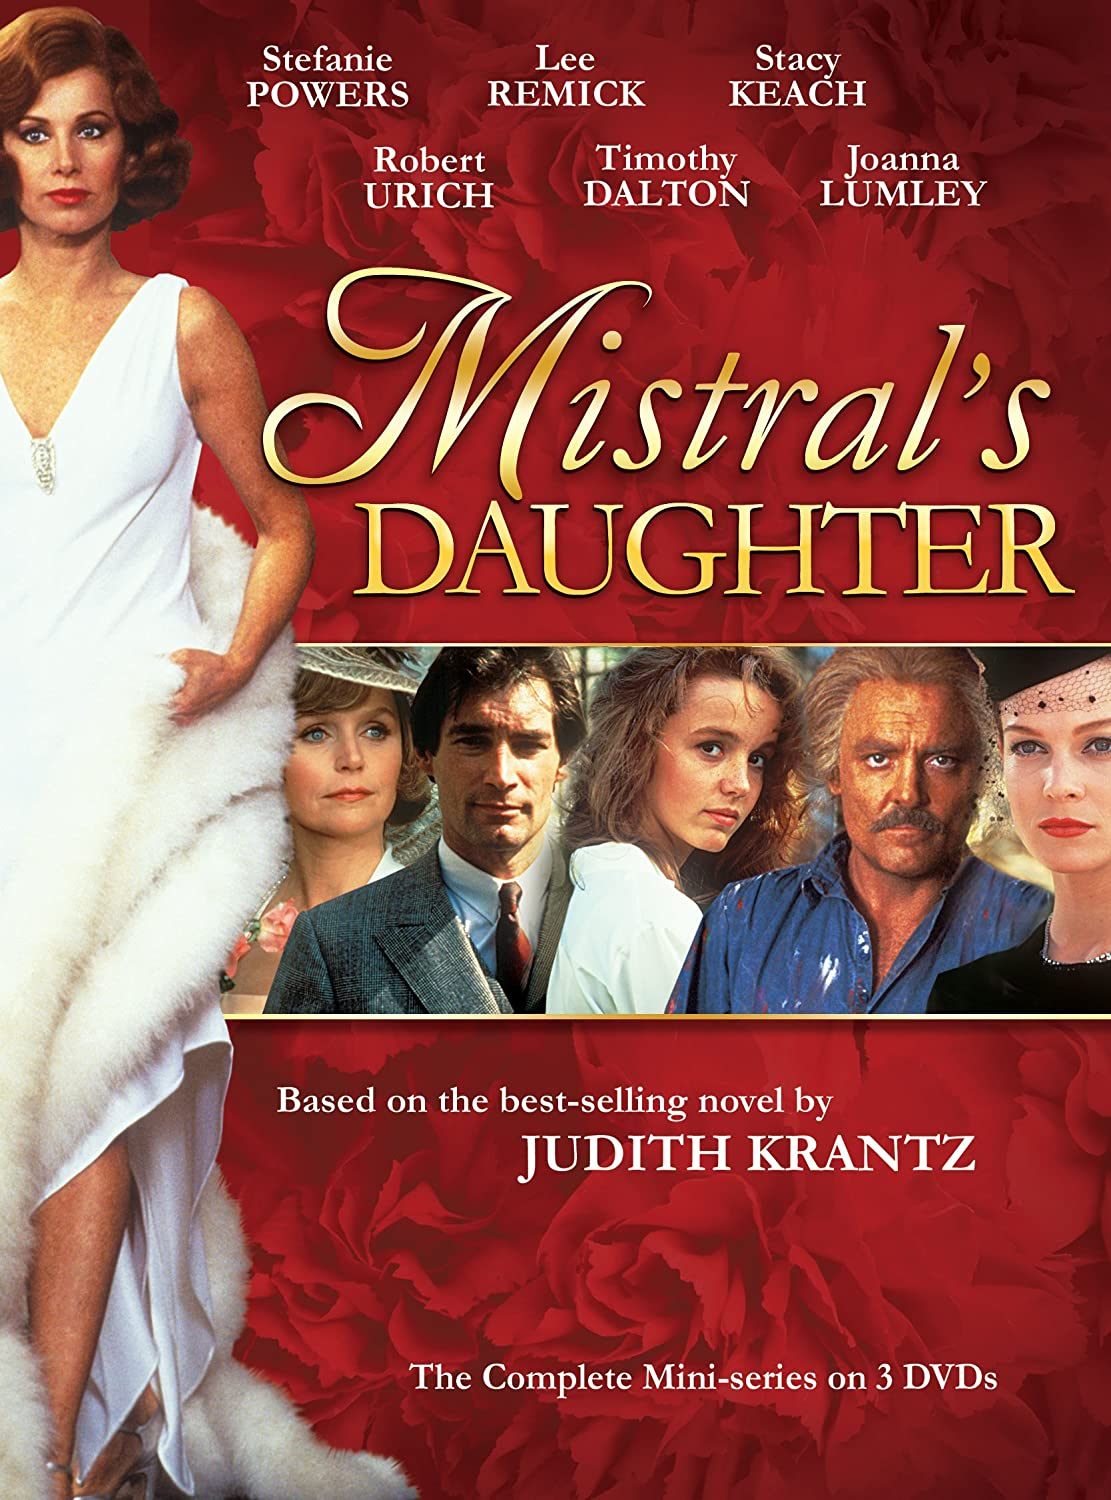 Amazon com: Mistral's Daughter: Stacy Keach, Lee Remick